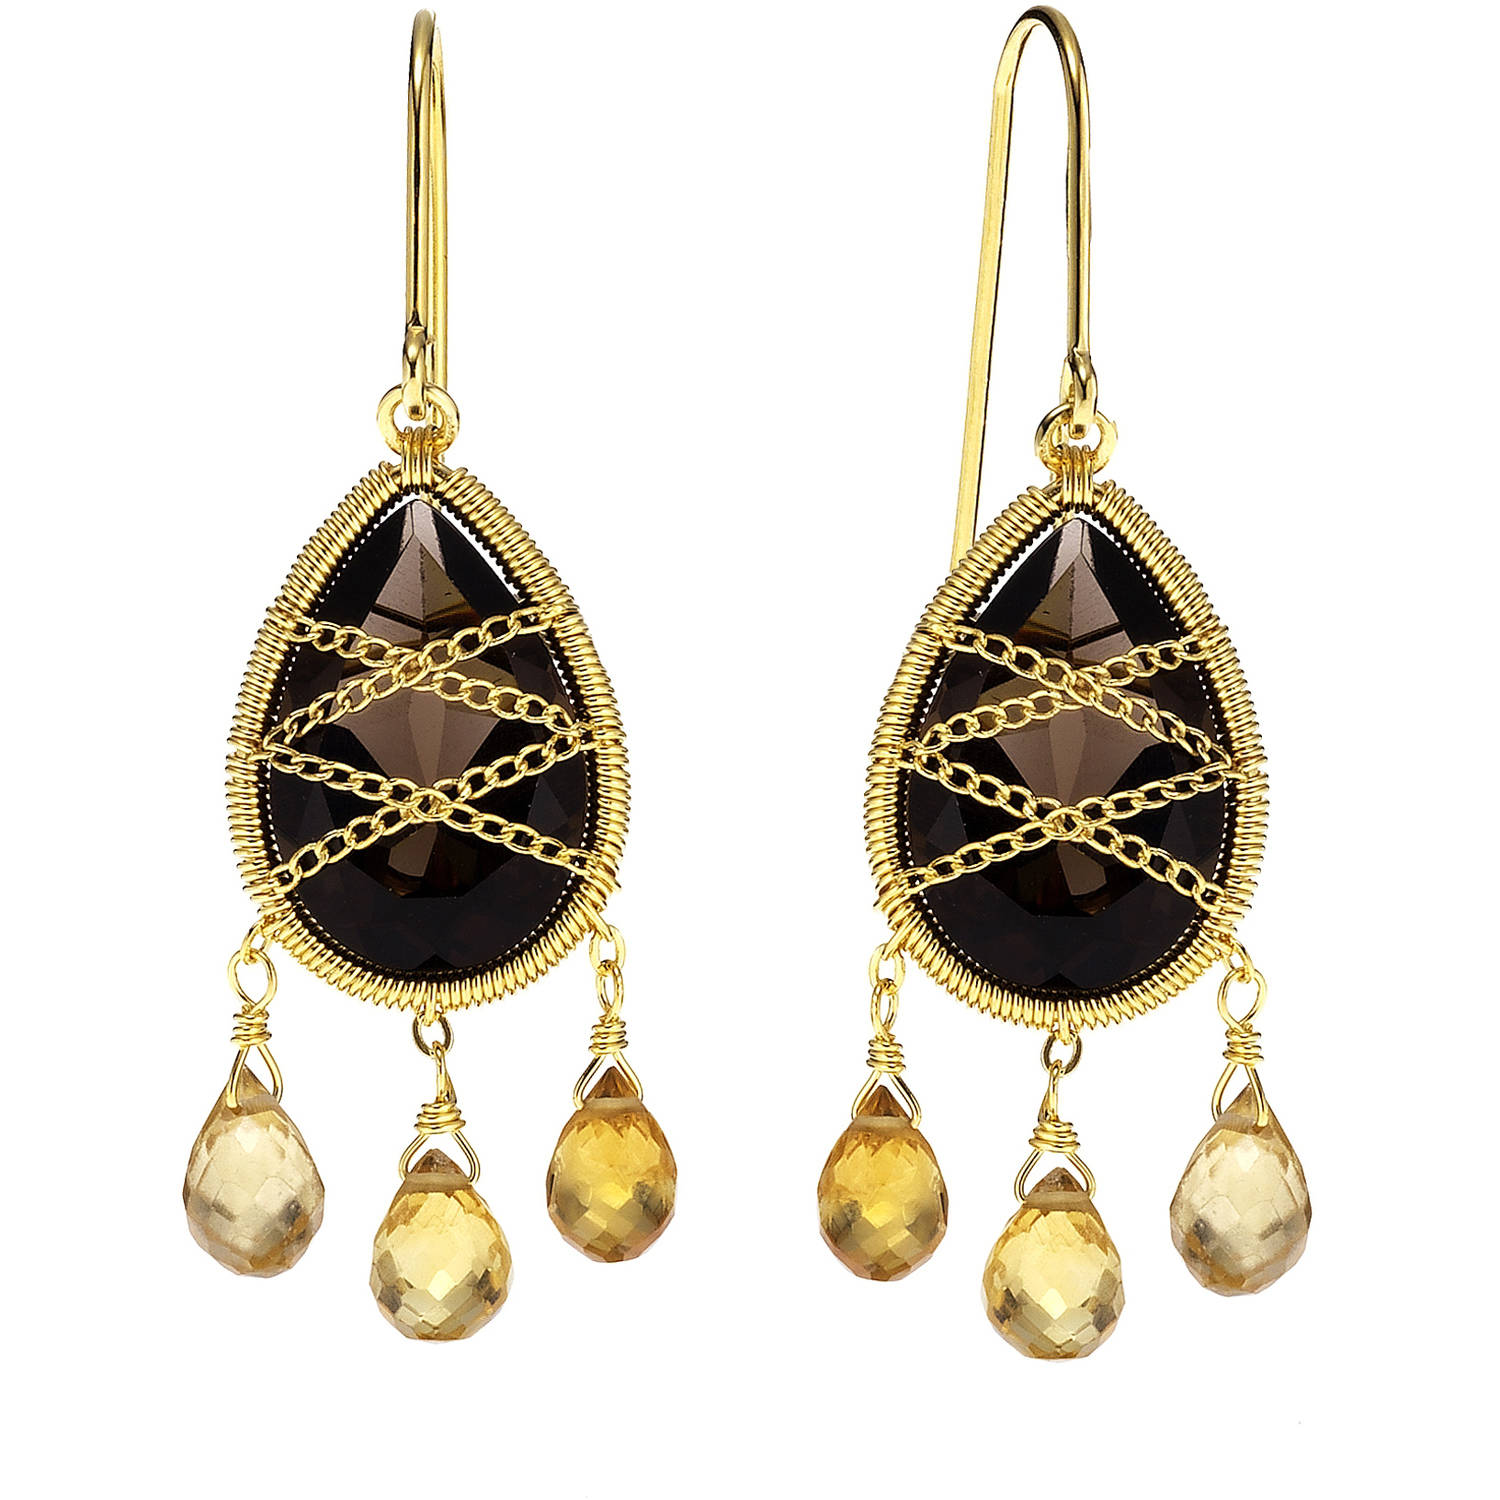 Image of 5th & Main 18kt Gold over Sterling Silver Hand-Wrapped Teardrop Chandelier Smokey Quartz and Citrine Stone Earrings